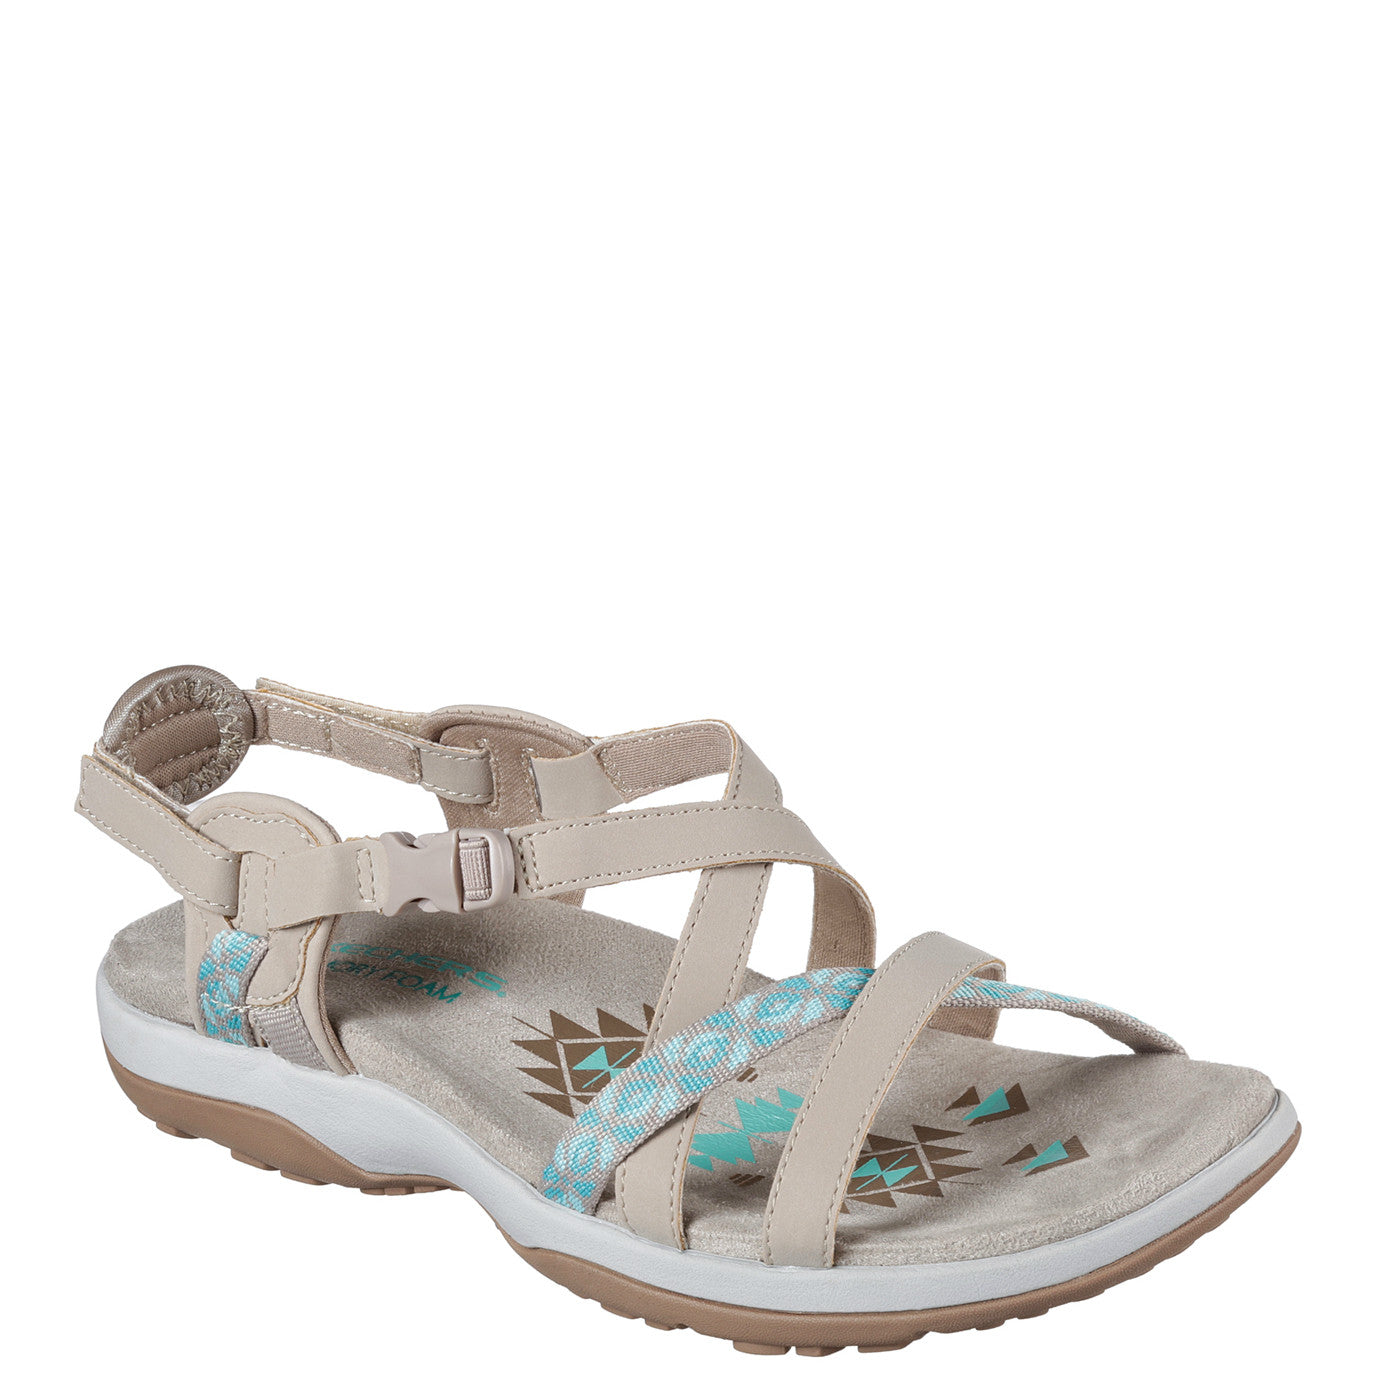 Skechers Slim Vacay Sandal | Skechers, Sandals, Slim